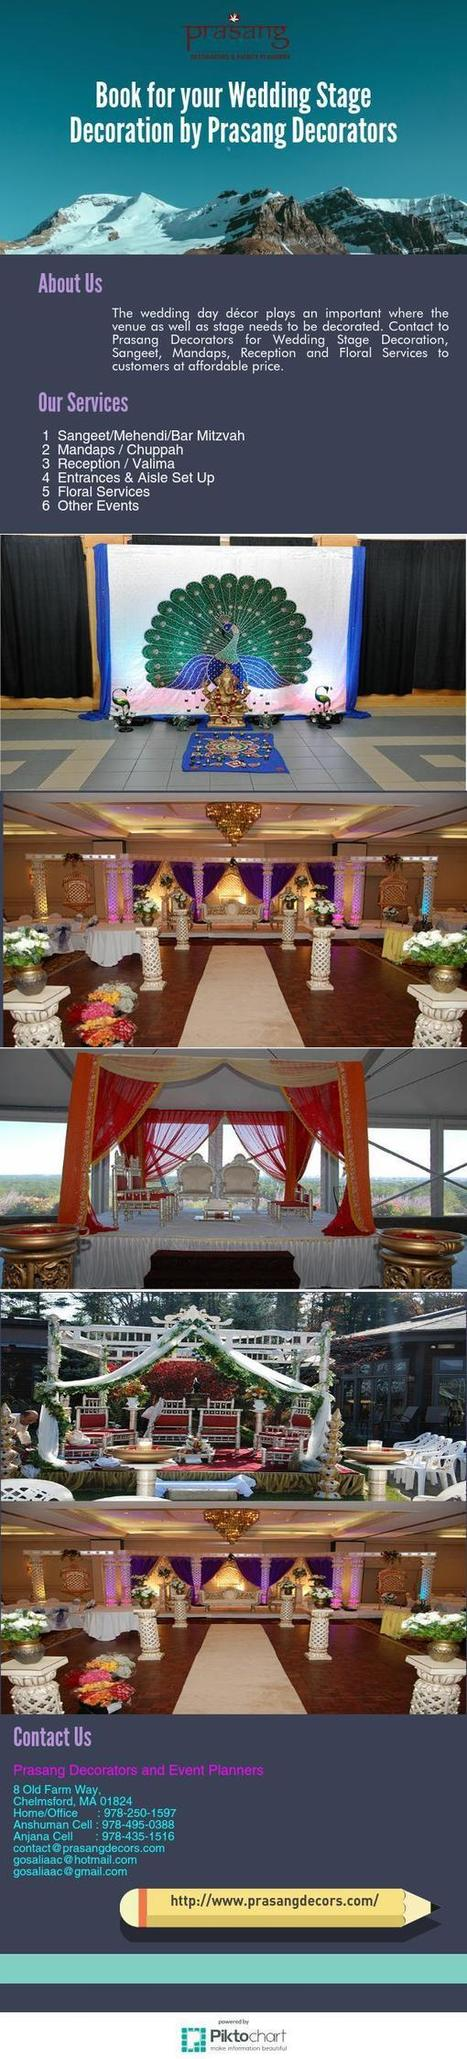 Book for your Wedding Stage Decoration By Prasang Decorators | Business | Scoop.it